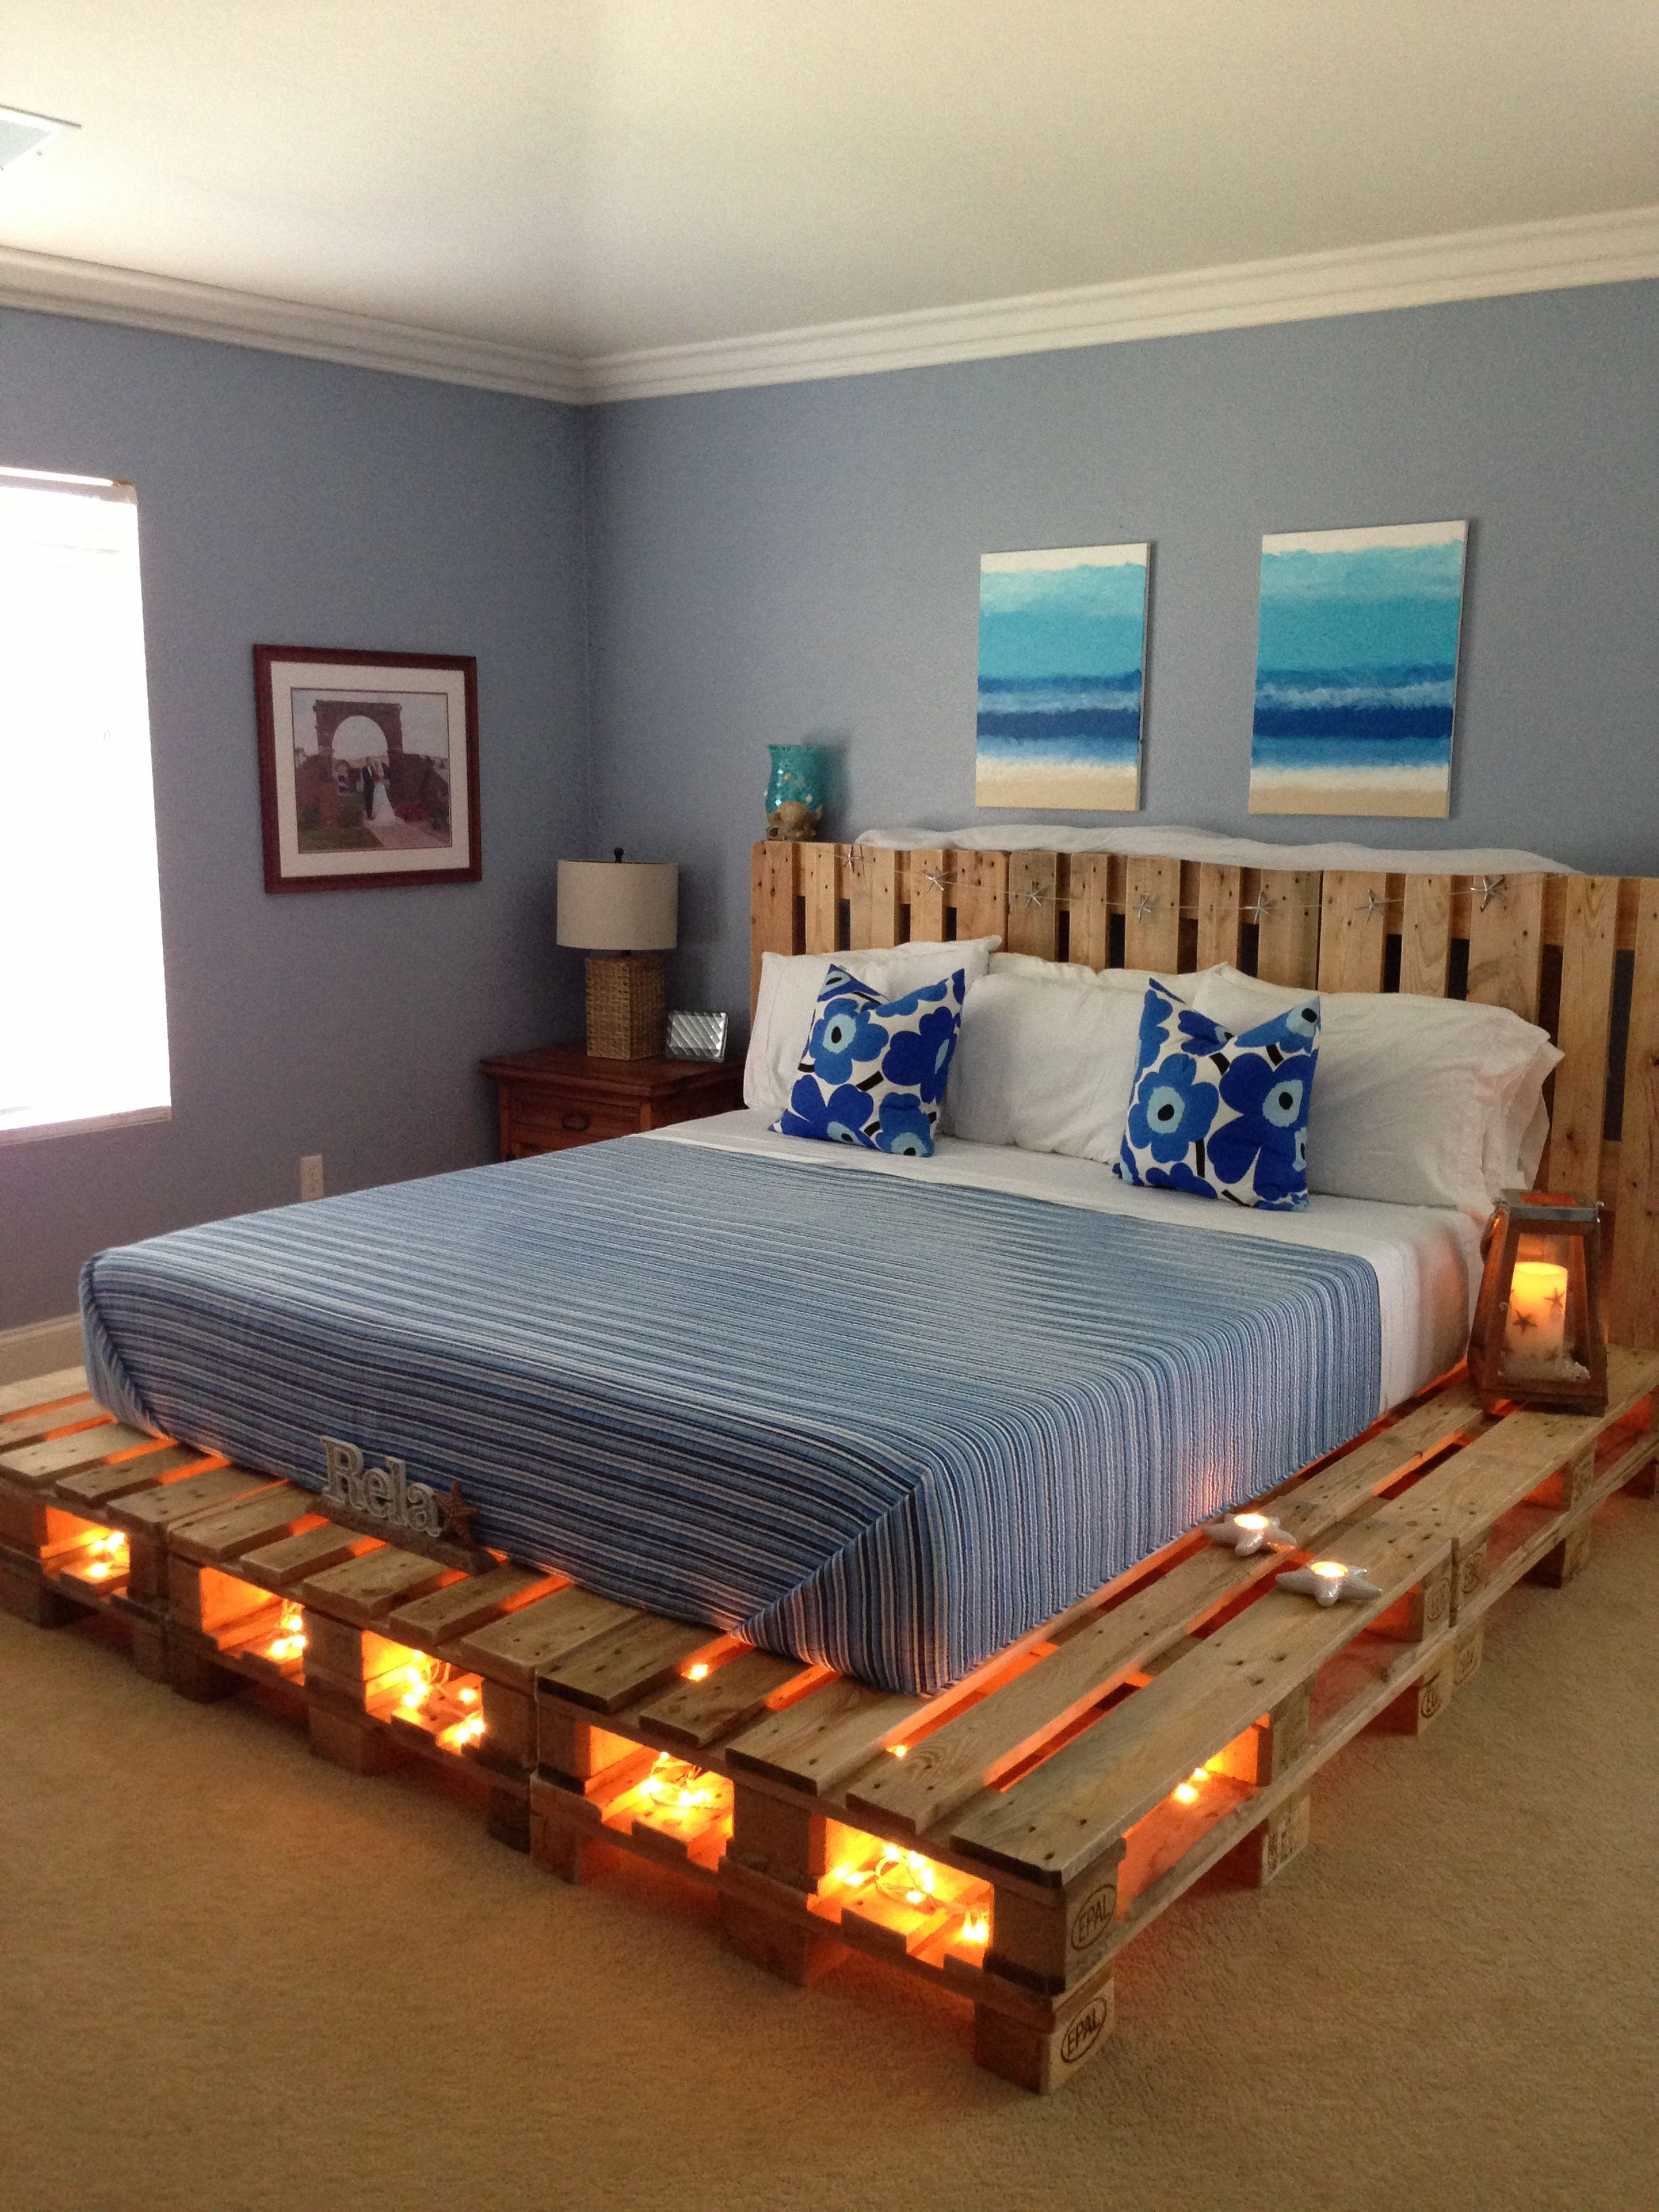 Amazing And Inexpensive Diy Wooden Pallet Furniture Ideas Pallets Diy Pallet Furniture Wooden Pallet Beds Diy Bed